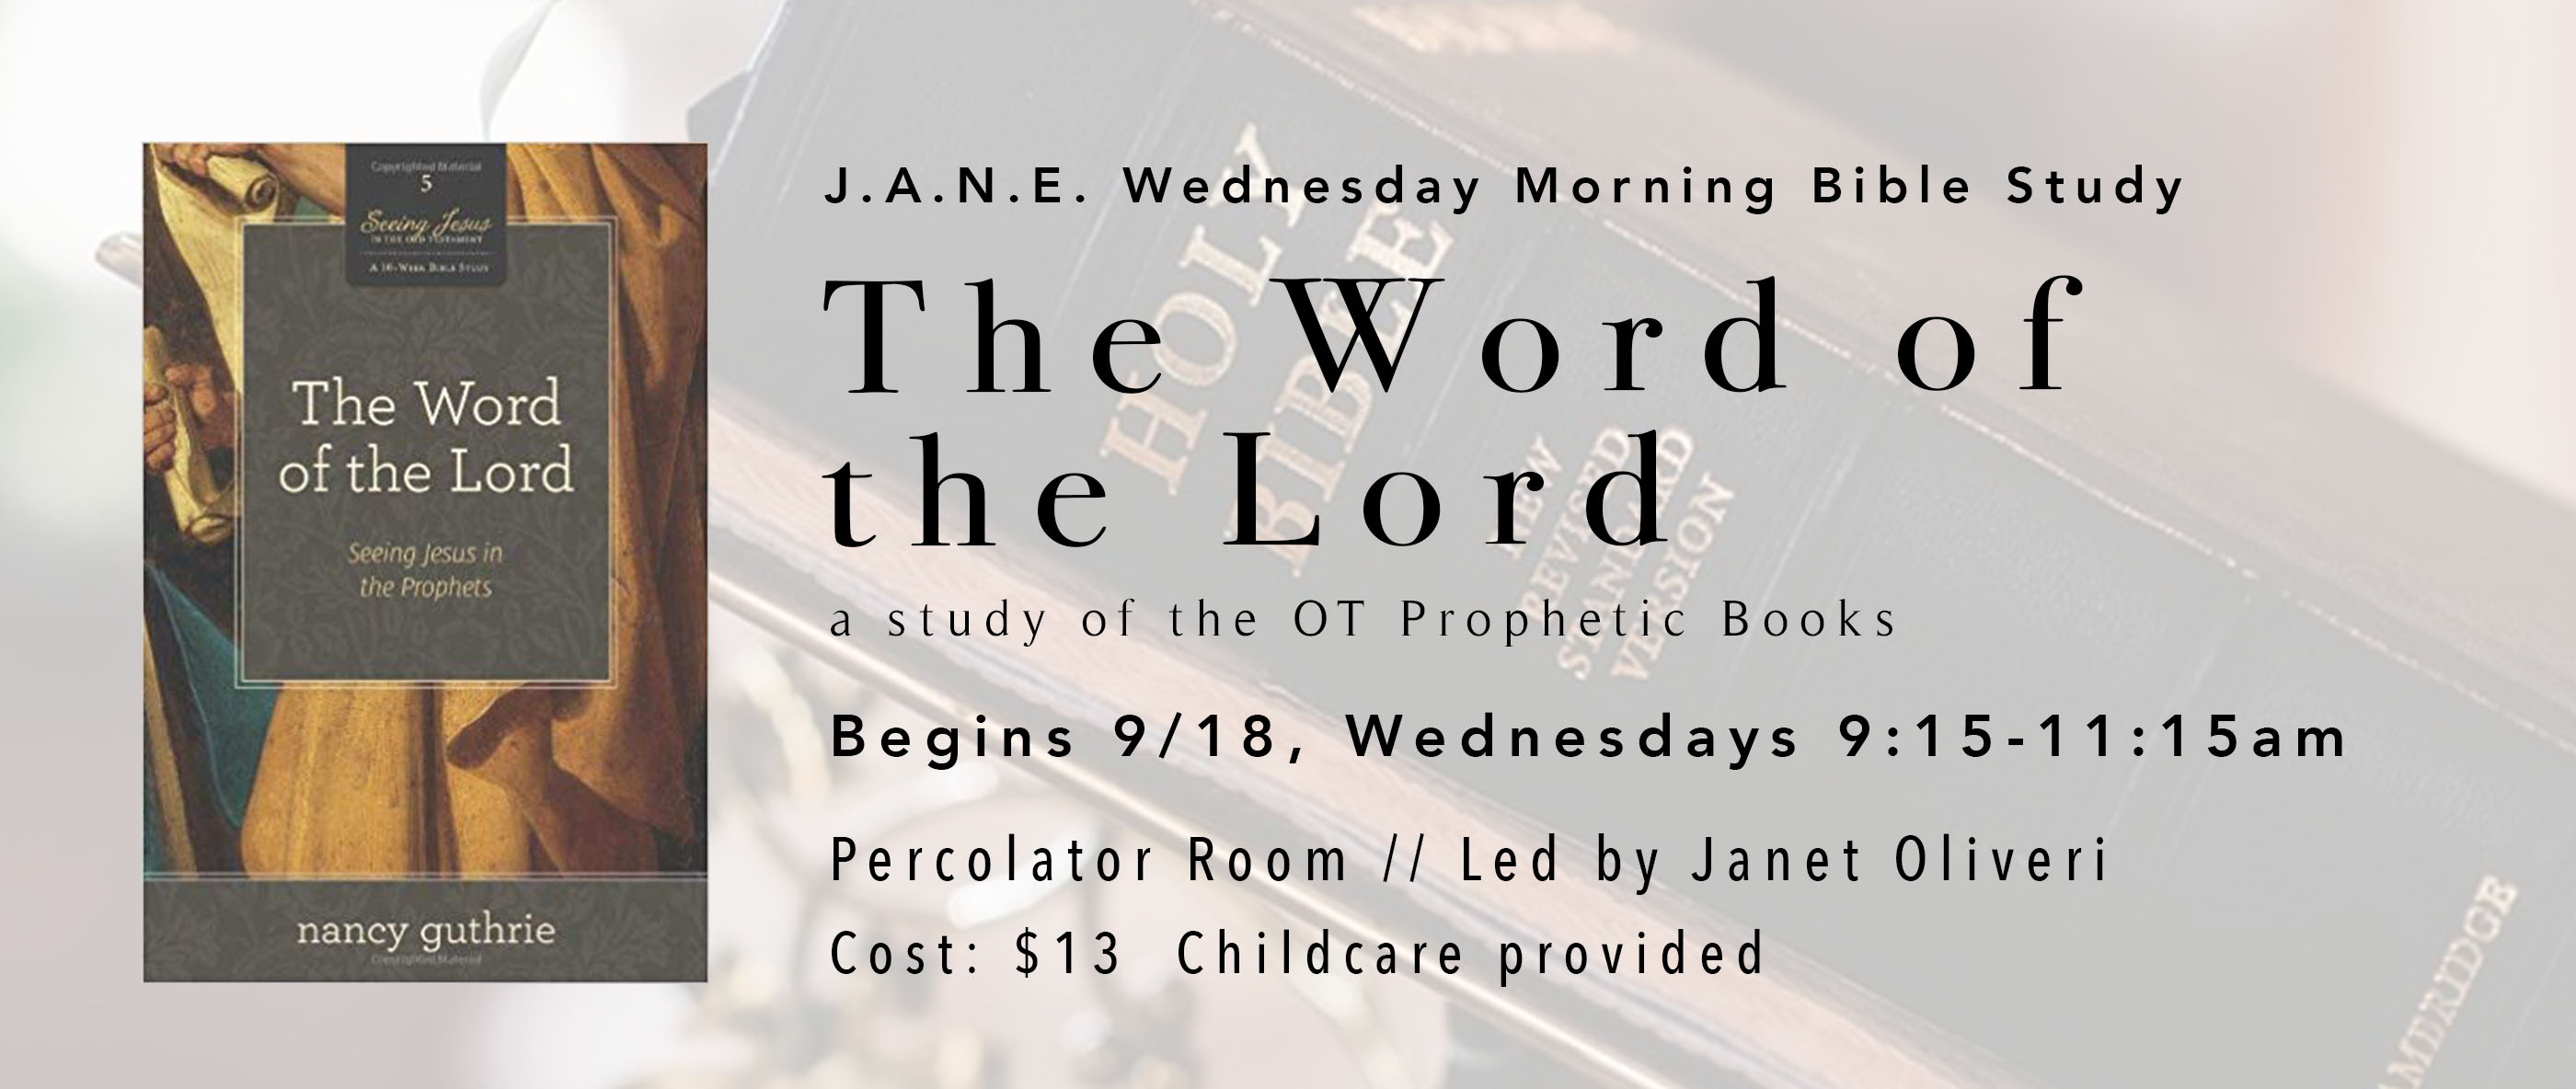 JANE_word_of_the_lord